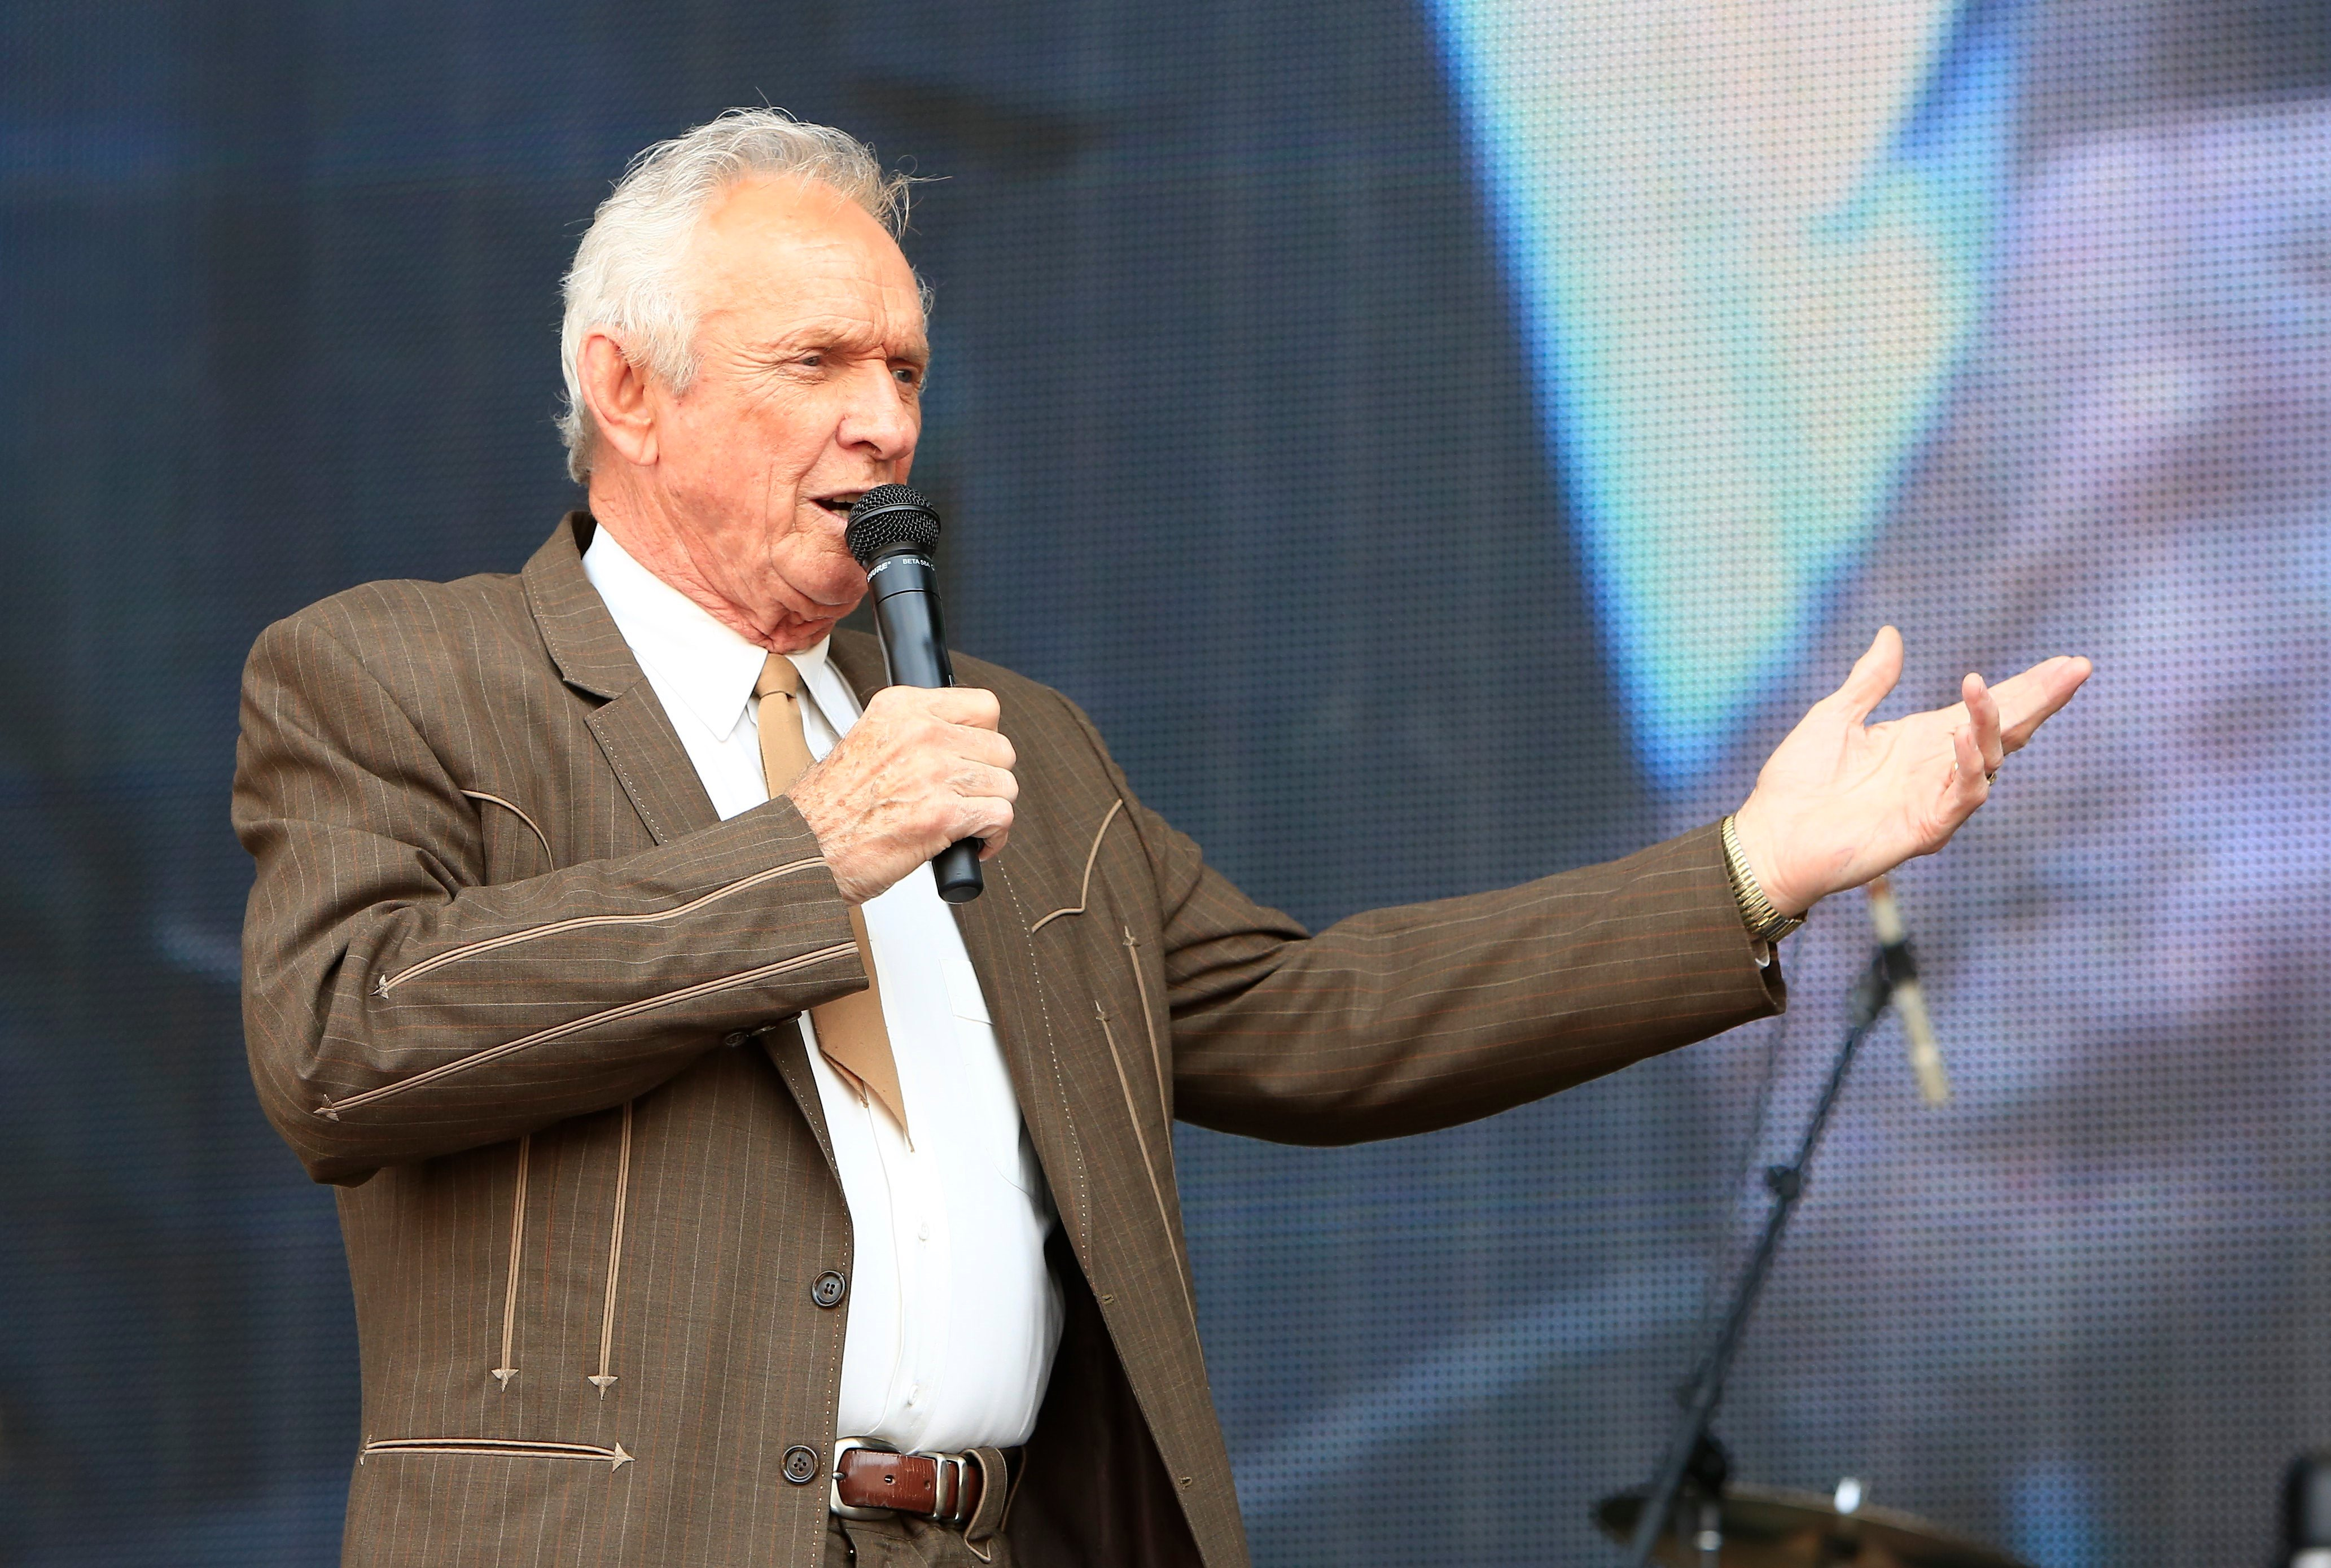 Mel Tillis performs at the Oklahoma Twister Relief Concert at the Gaylord Family-Oklahoma Memorial Stadium on Saturday, July 6, 2013 in Norman, Okla.